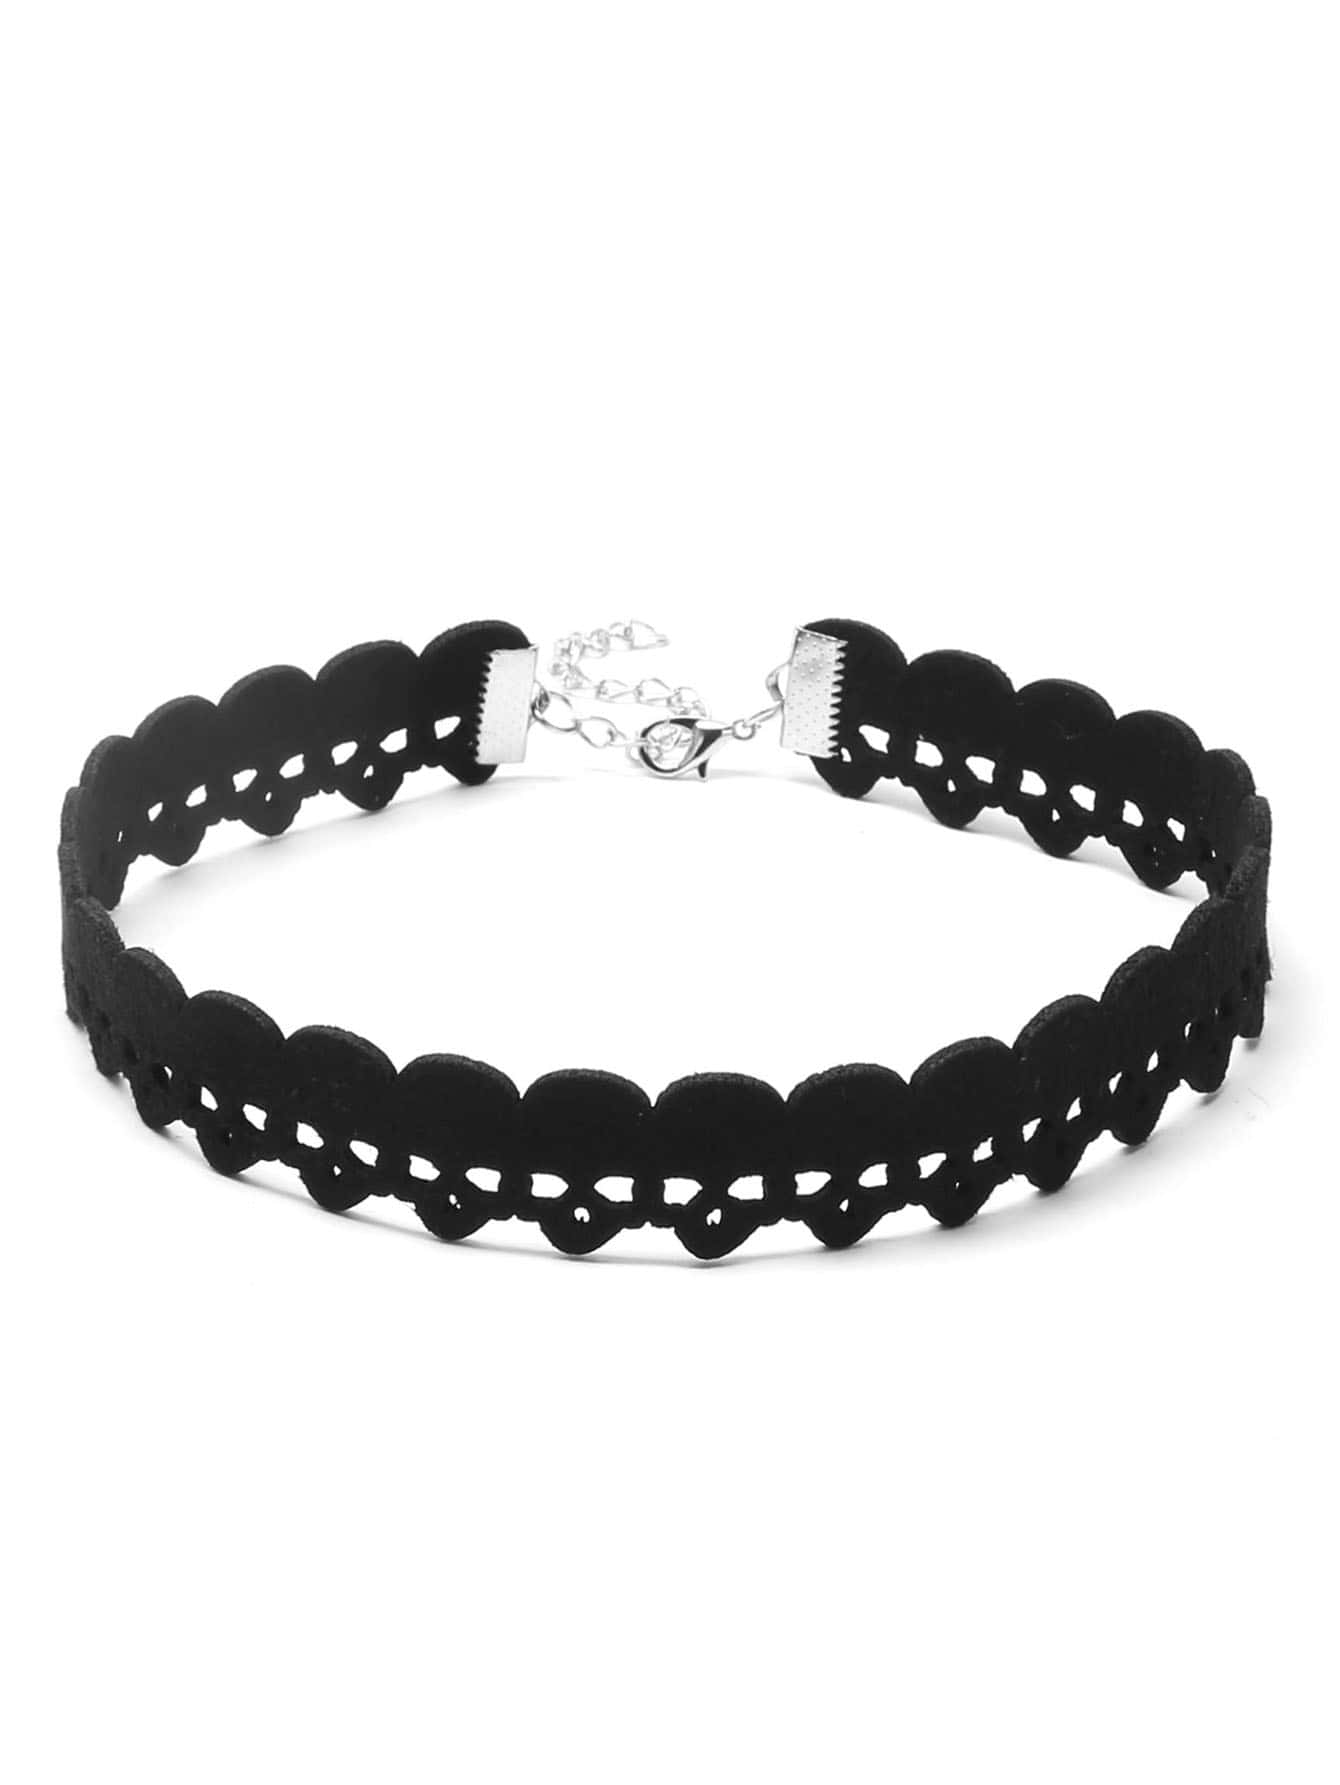 Black Skull Hollow Out Choker NecklaceBlack Skull Hollow Out Choker Necklace<br><br>color: Black<br>size: None